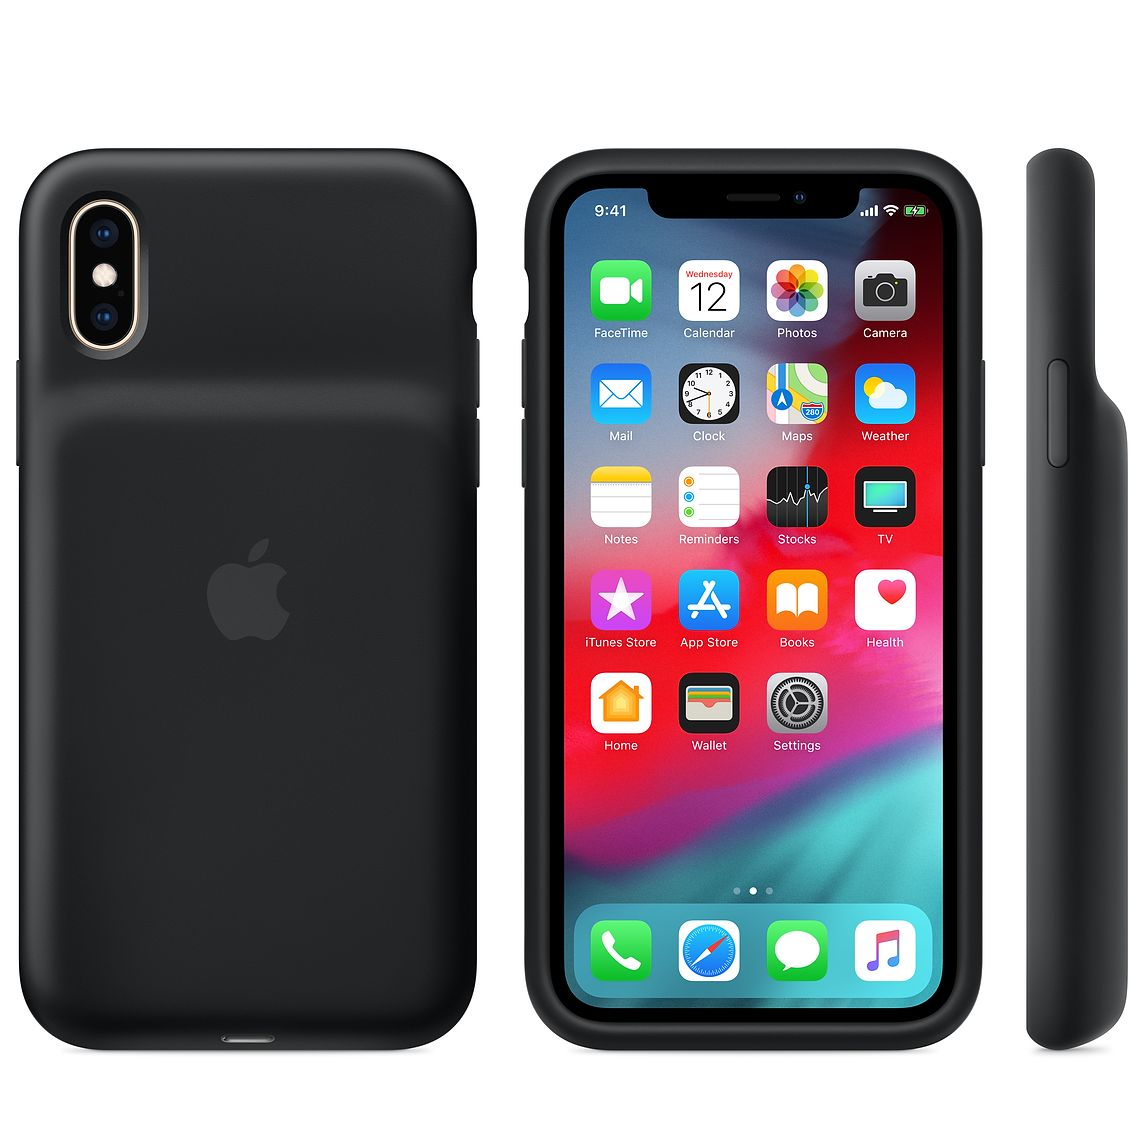 new c coque pour iphone x